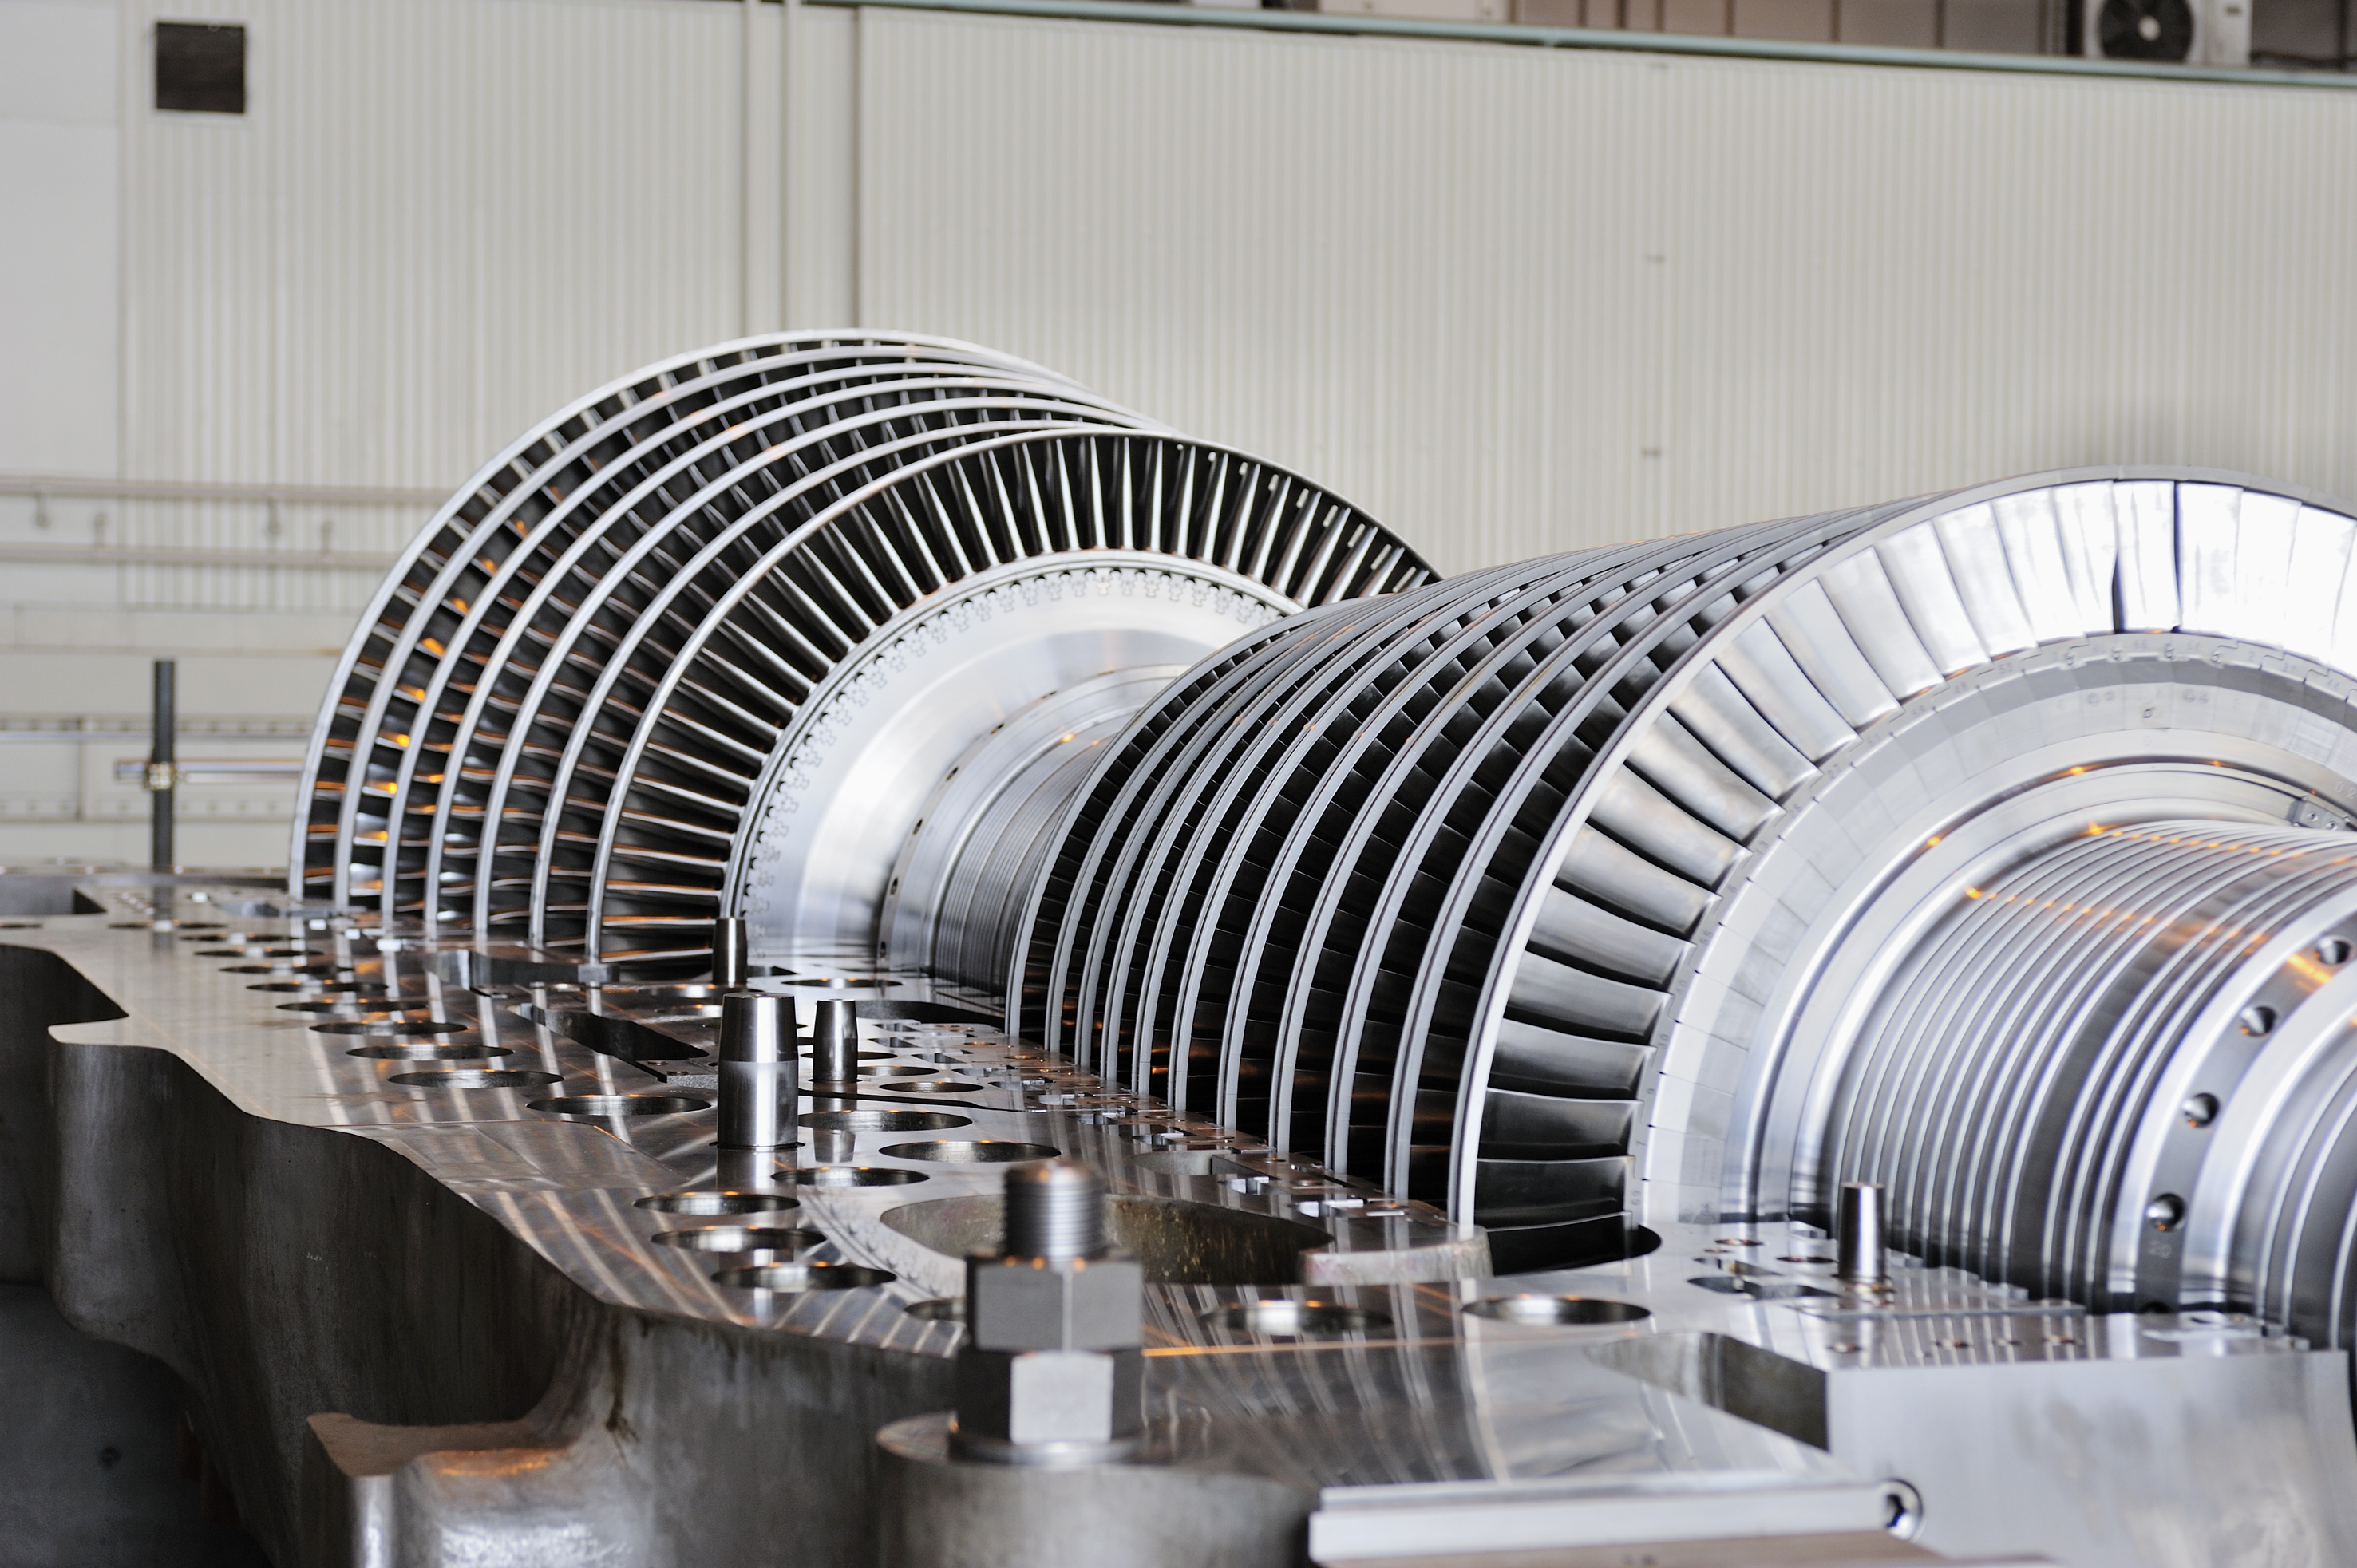 Toshiba Receives Order to Supply Steam Turbine and Generator for